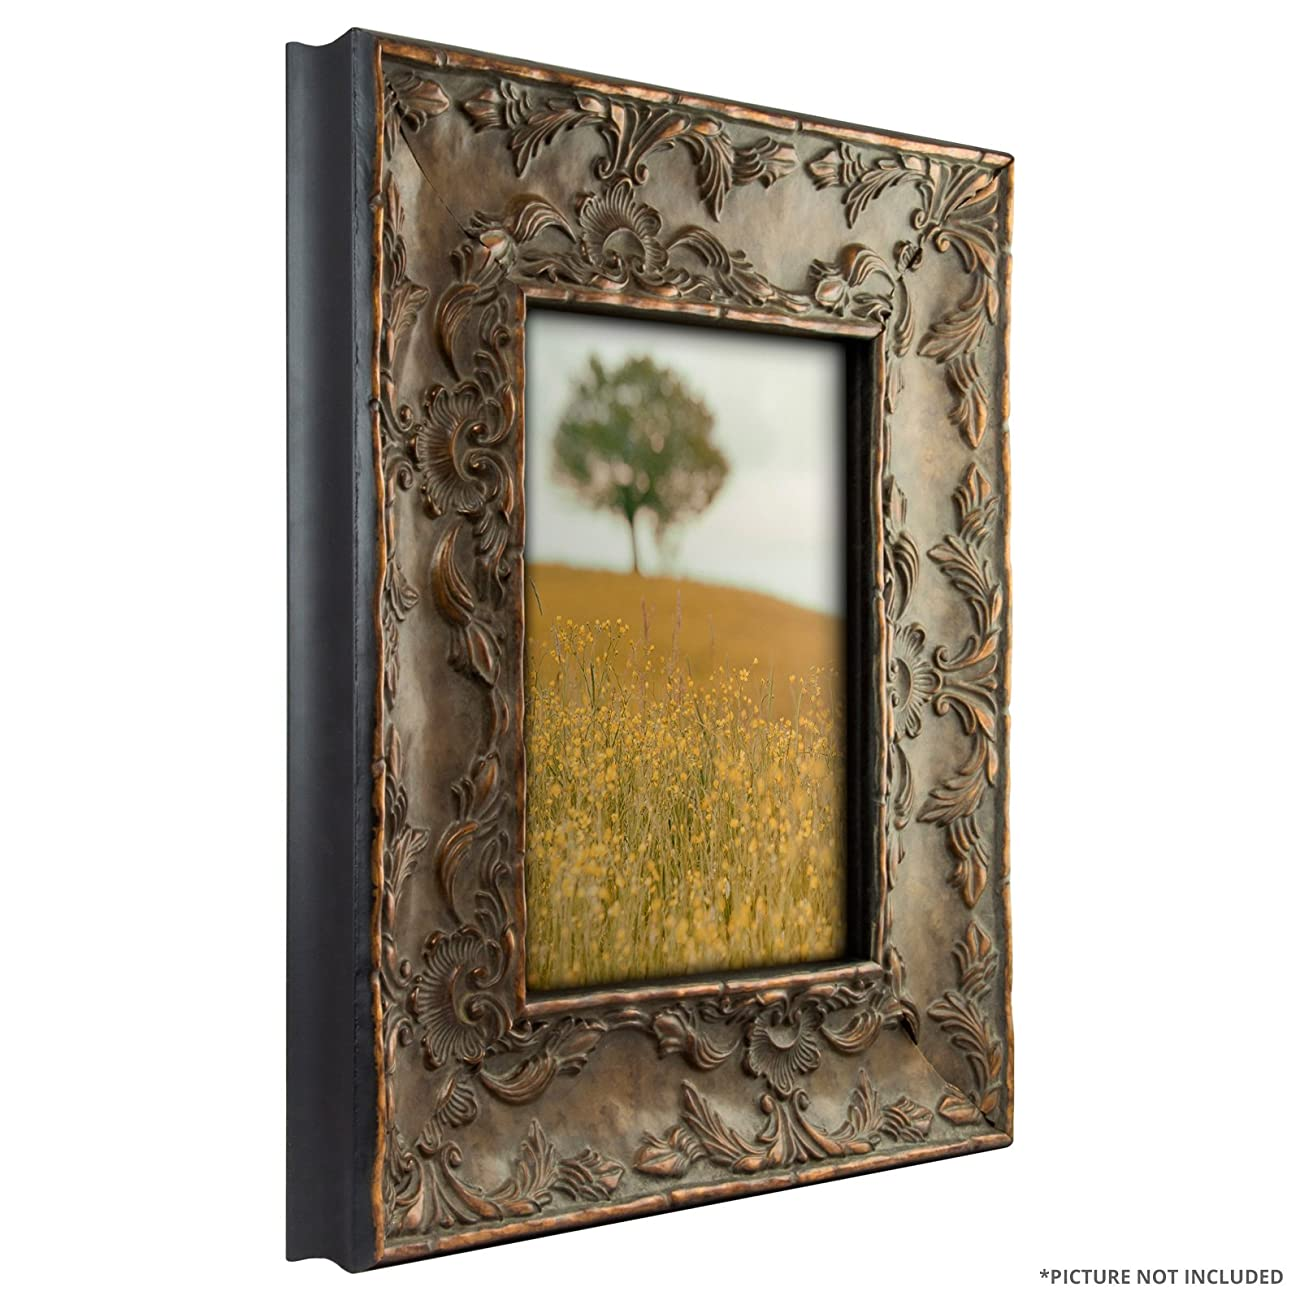 Craig Frames 10723 8 by 10-Inch Picture Frame, Solid Wood Core, Embossed Leaf Finish, 3.25-Inch Wide, Antique Gold 2